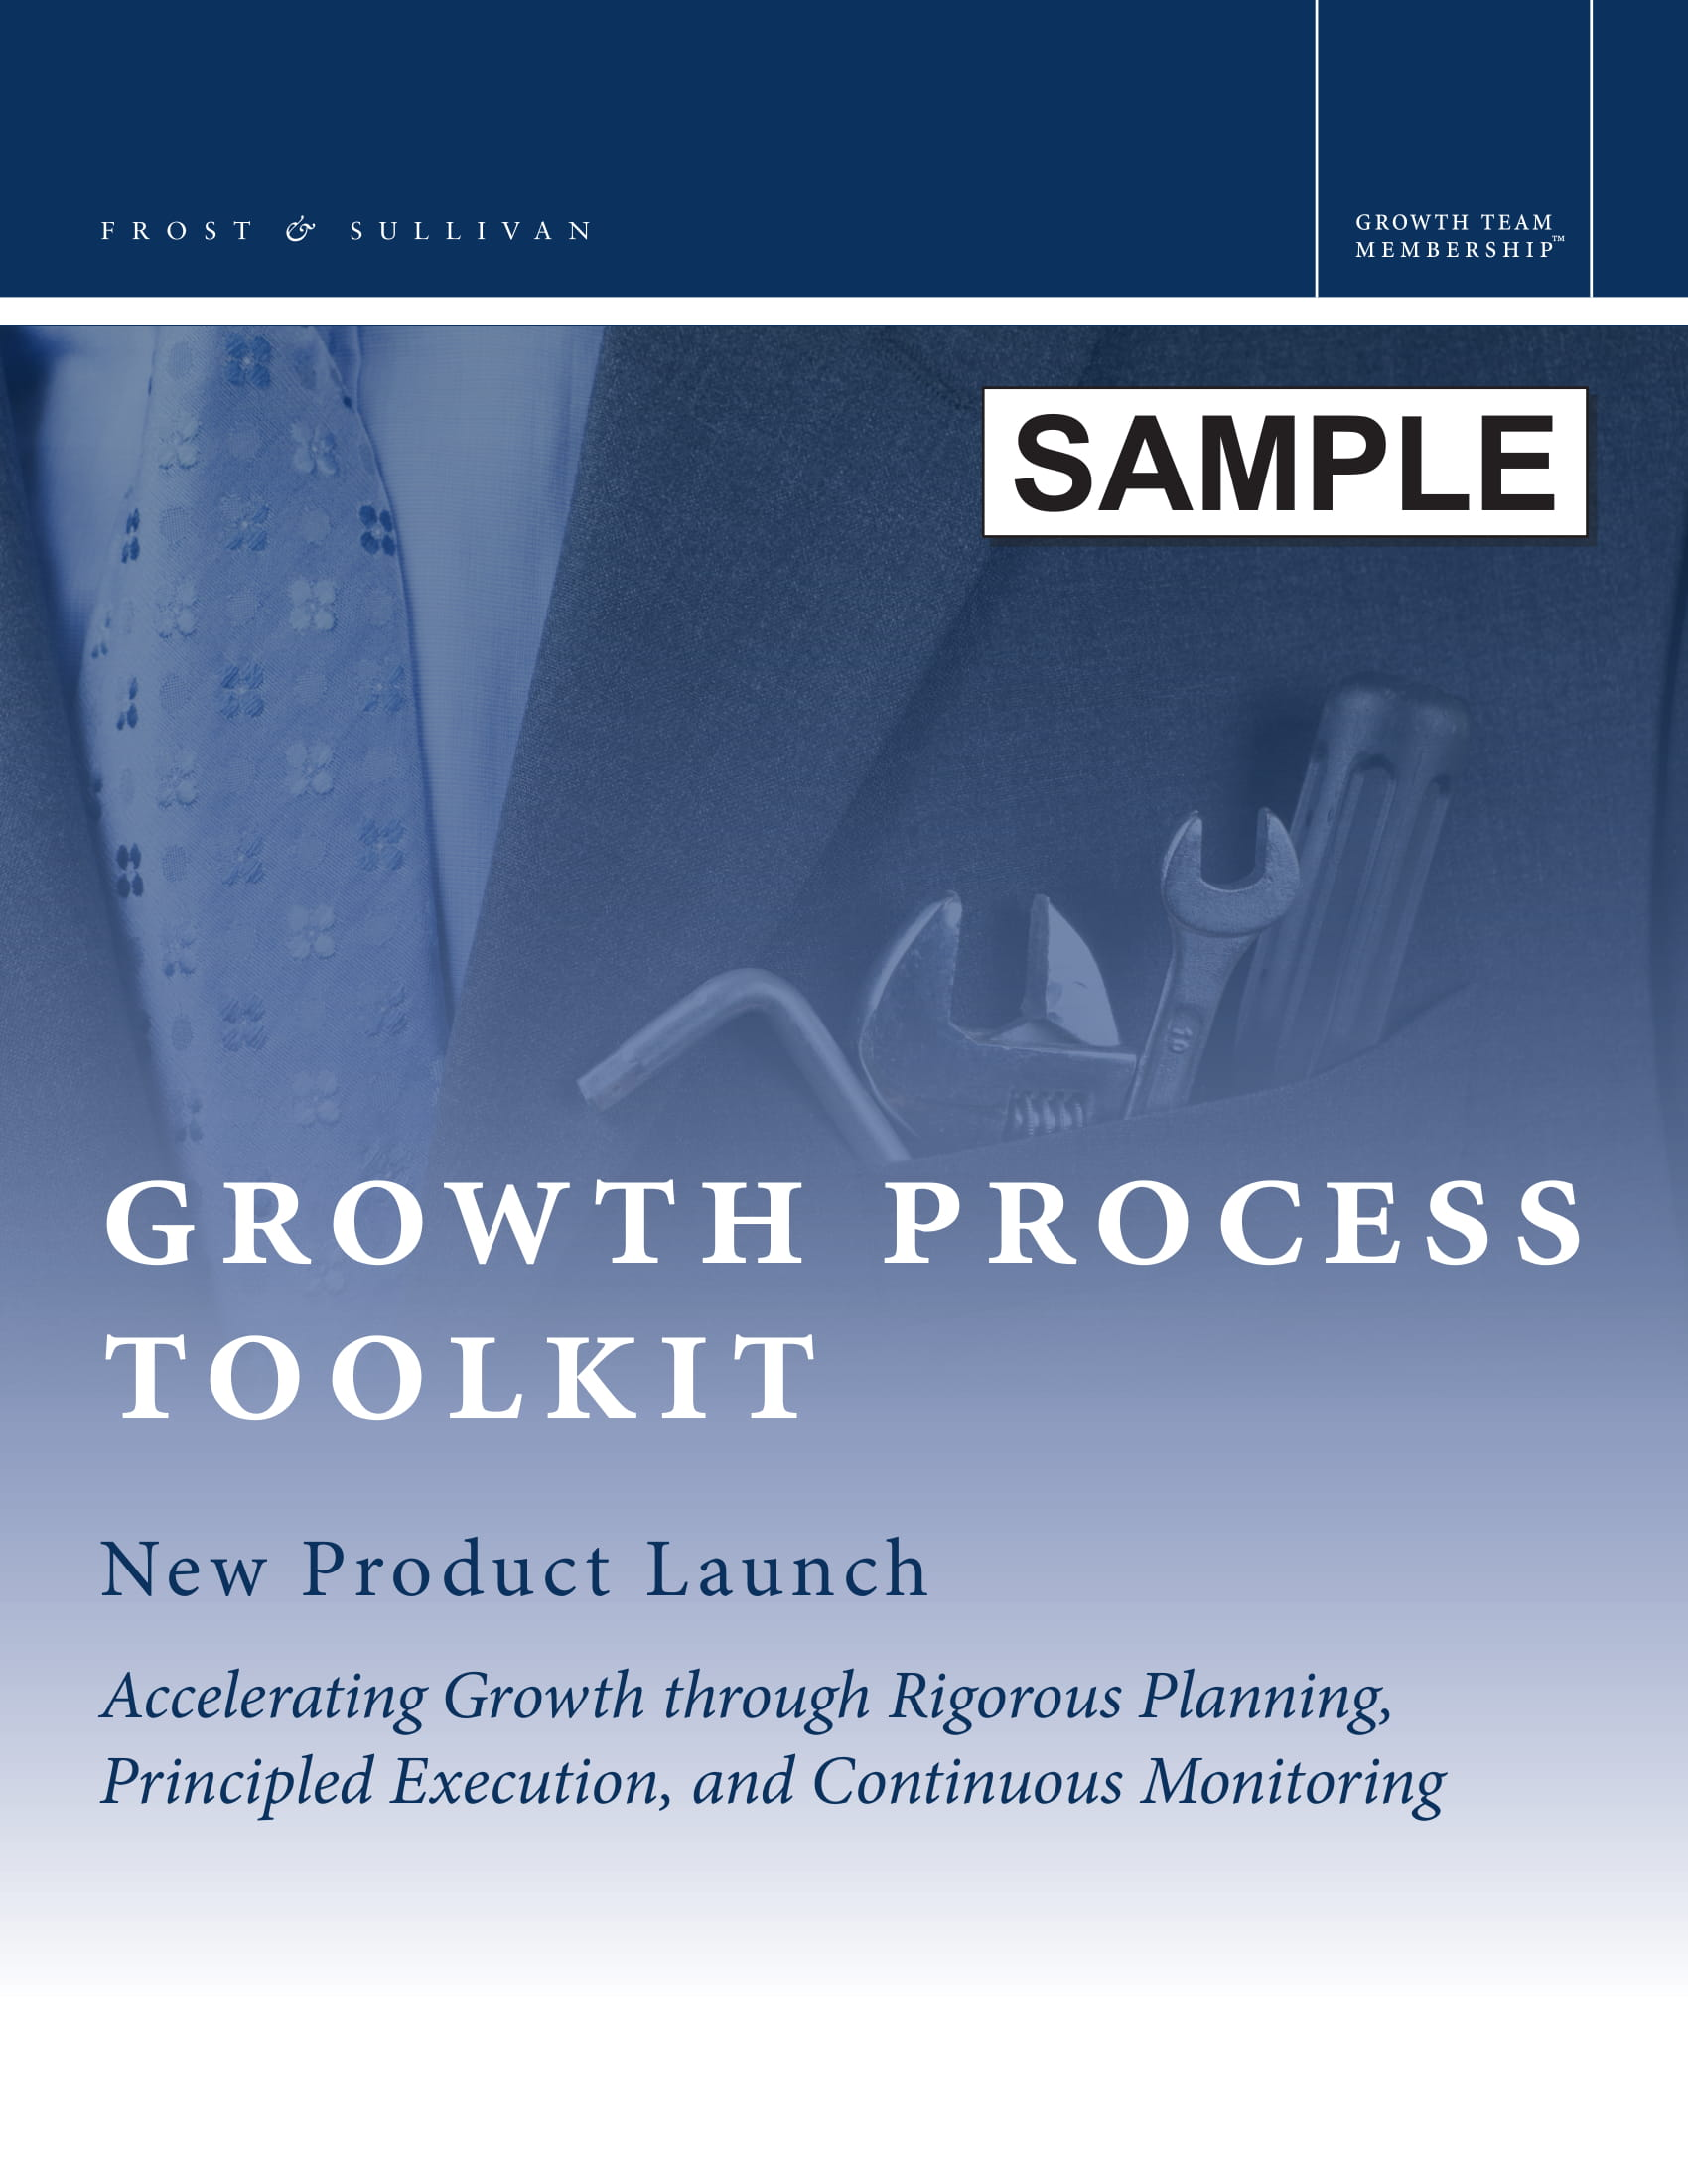 product launch marketing plan and growth process toolkit example 01